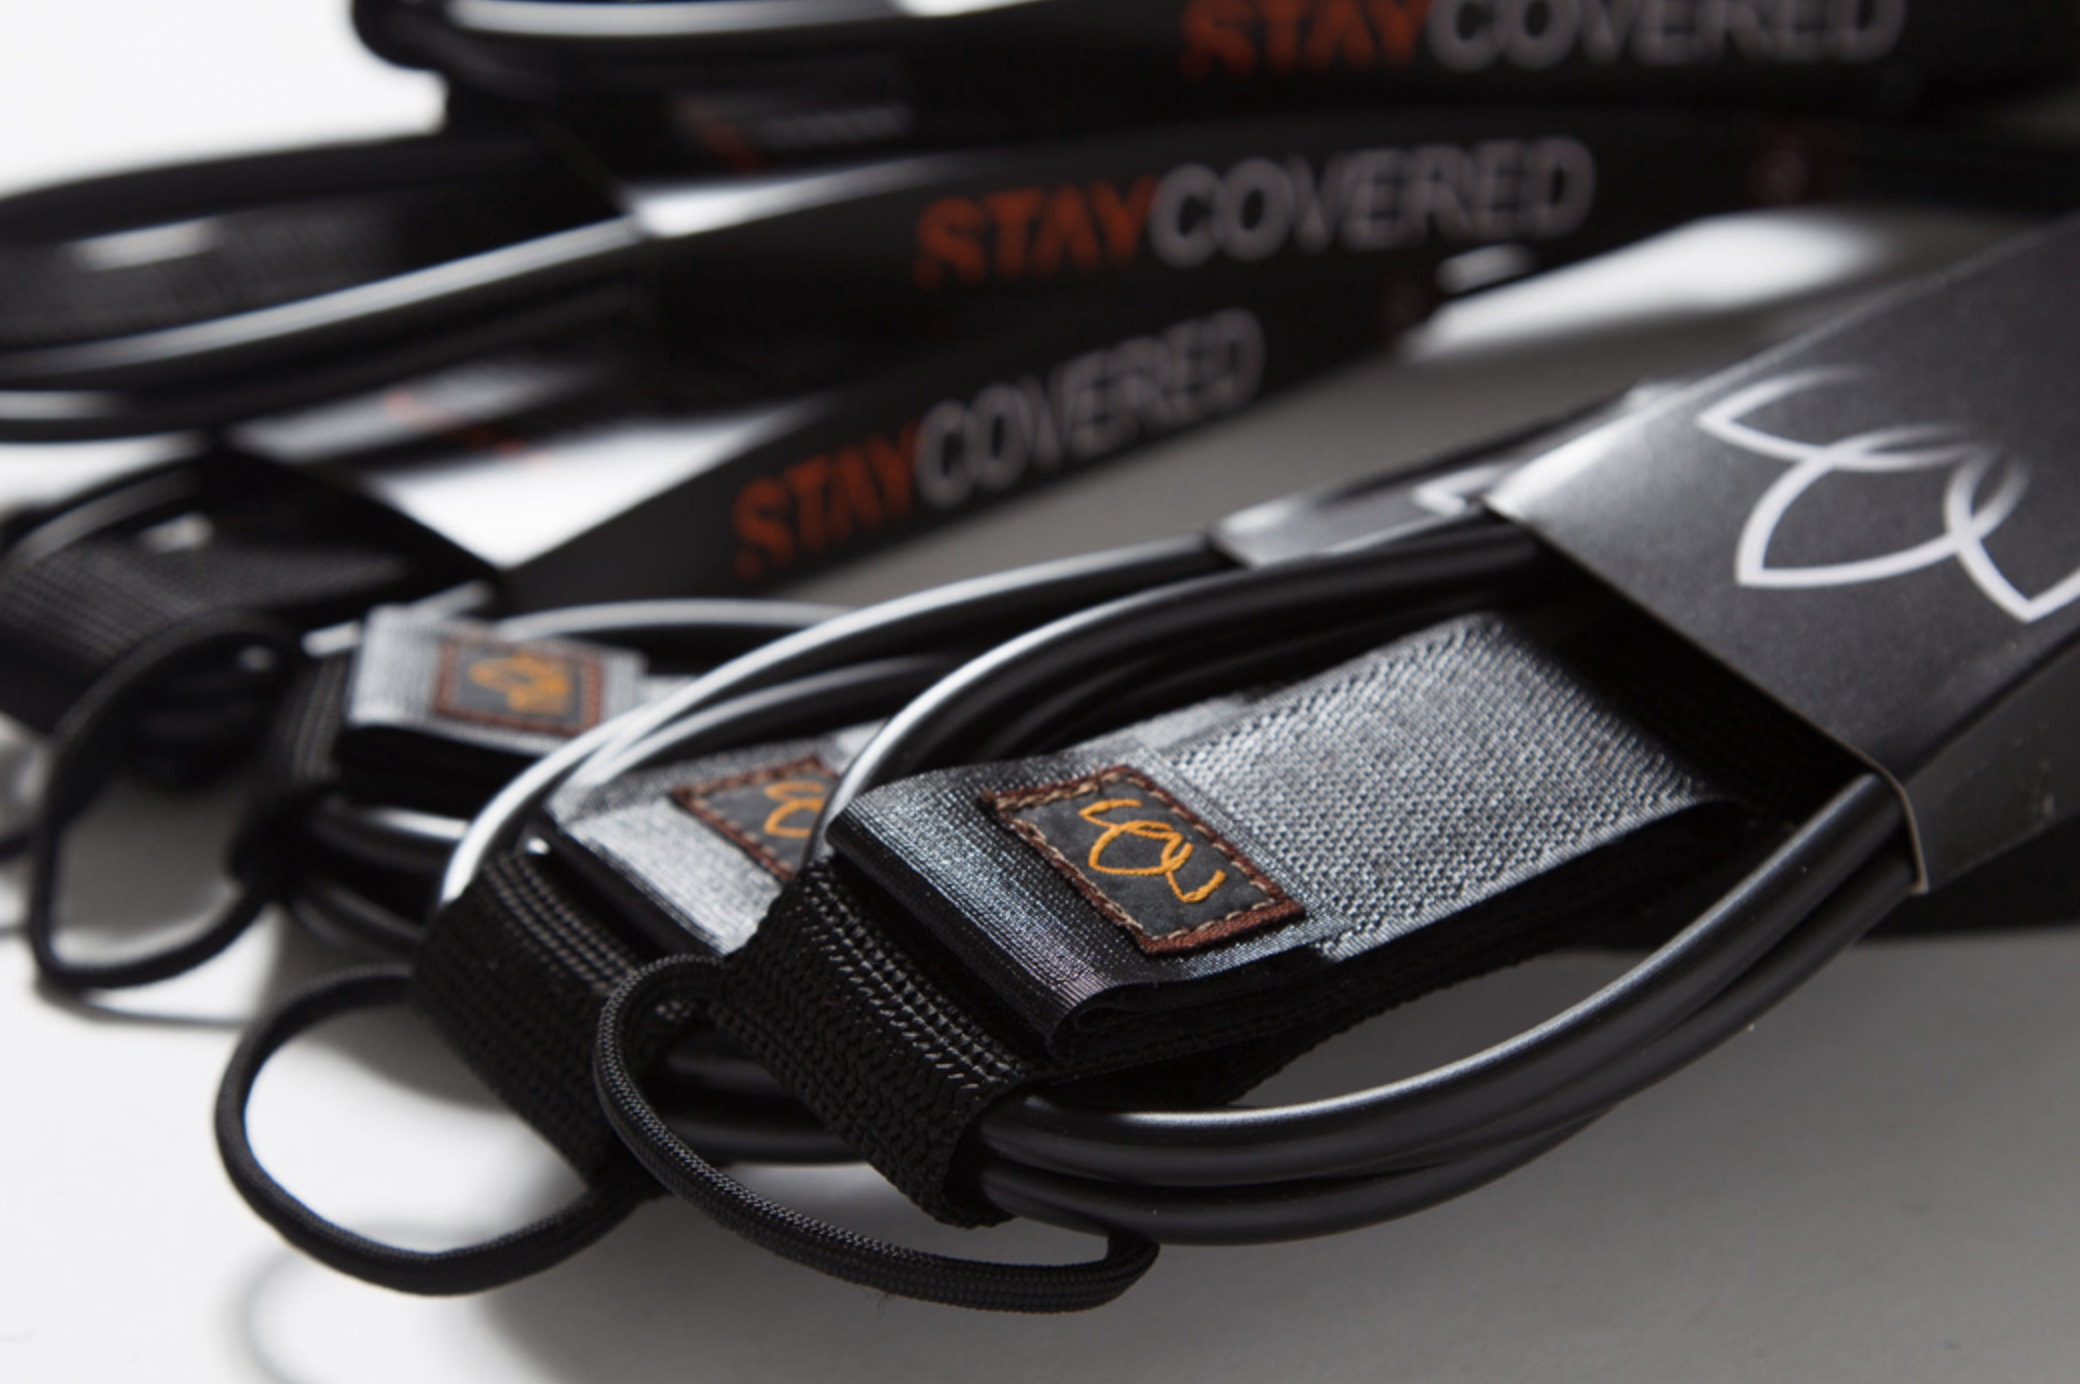 [STAY COVERED] リーシュ 6ft COMP mat black